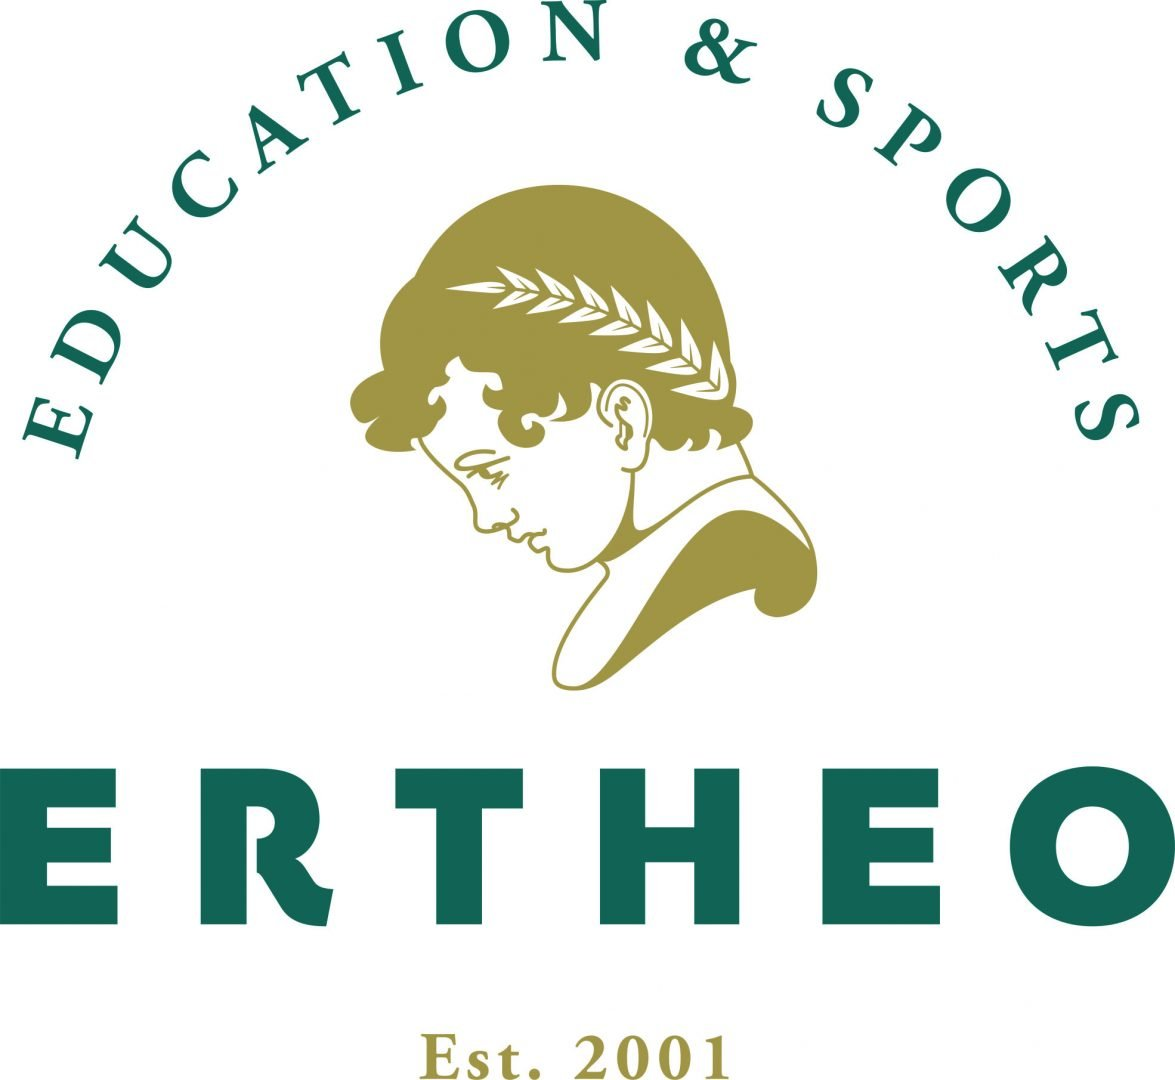 logo ertheo curvo education sport - Where does our name Ertheo come from?